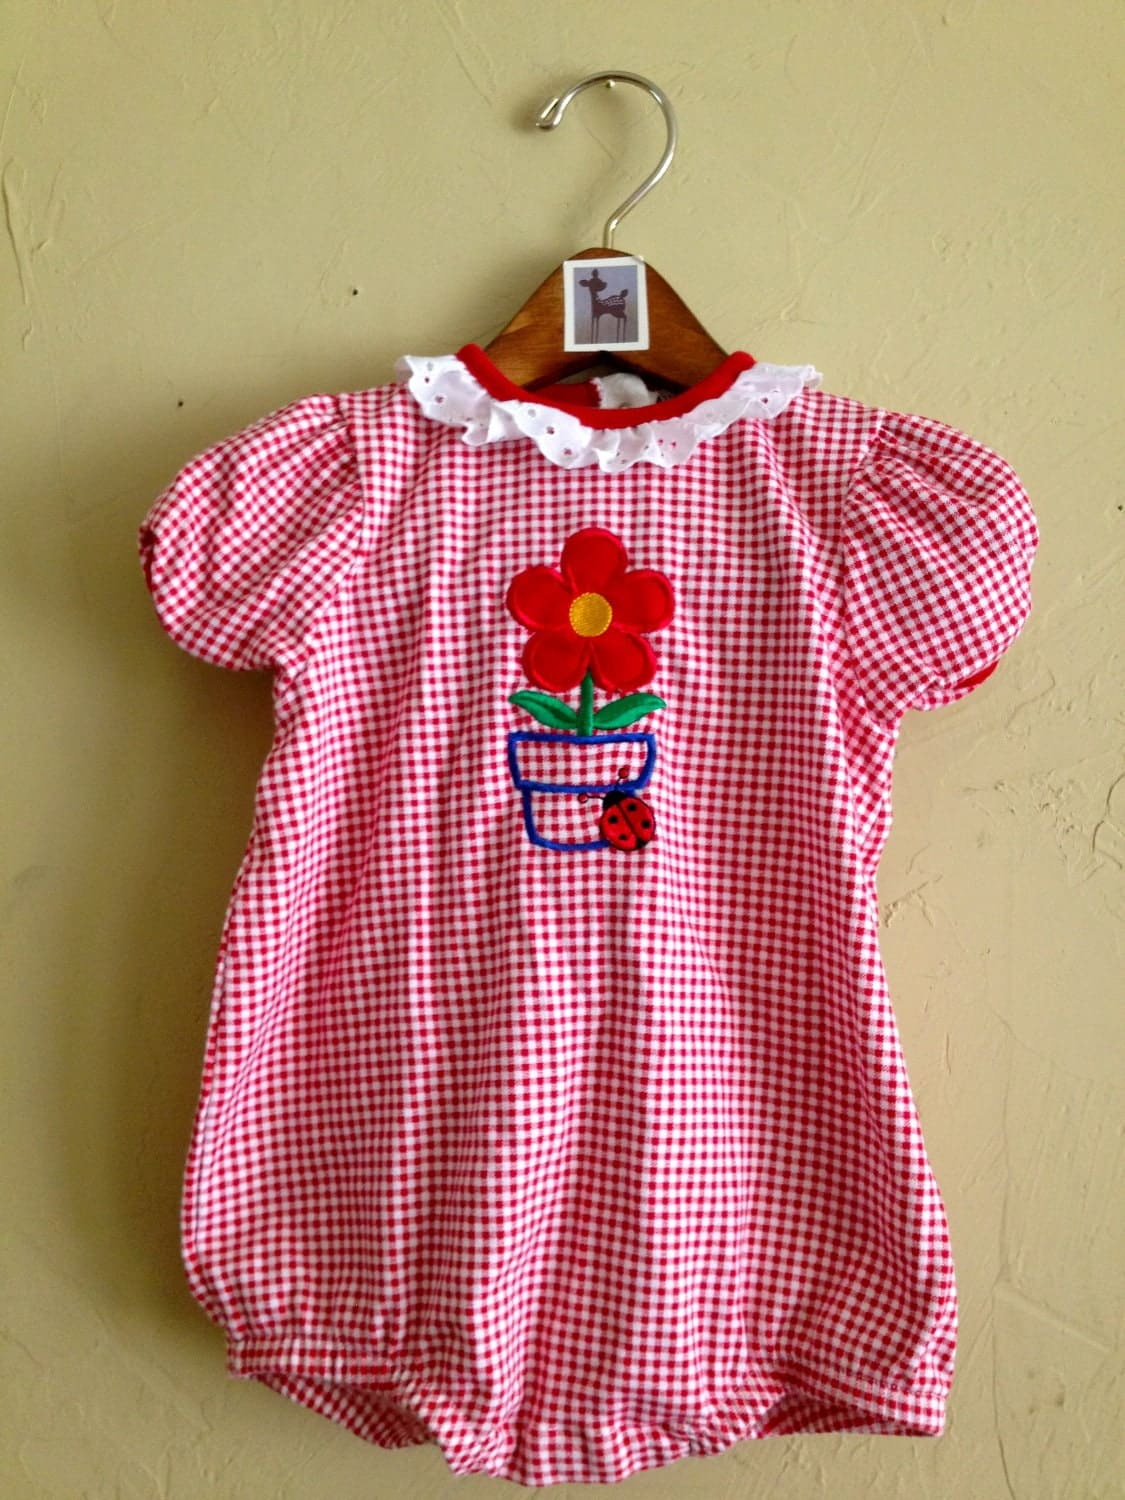 Vintage Red Gingham Cotton Jumper with Flower Applique 18m - FawnVintage01